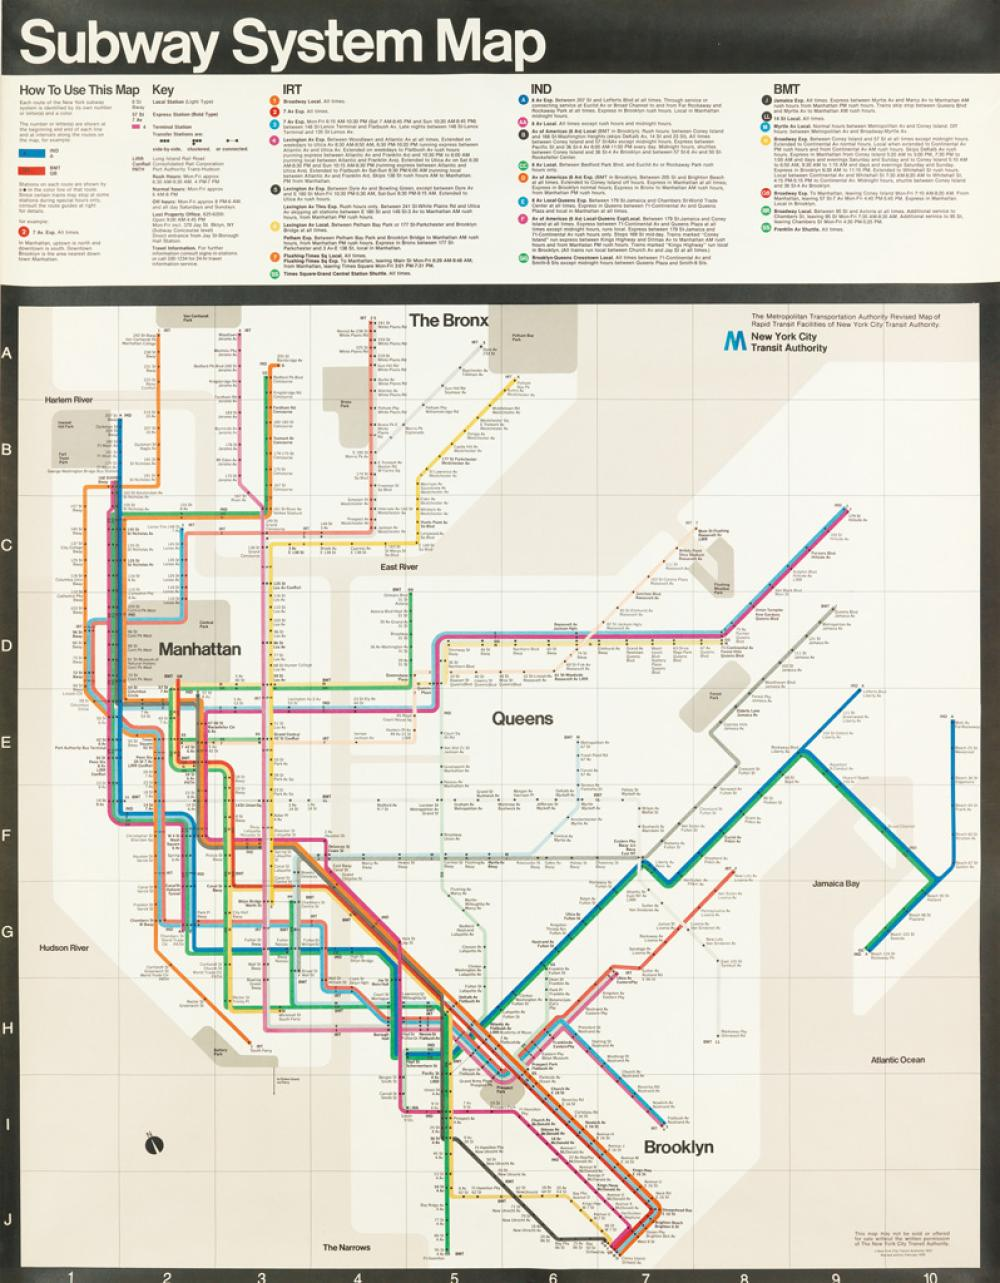 Massimo Vignelli Subway Map 1978.Massimo Vignelli 1931 2014 Subway System Map 1978 58x45